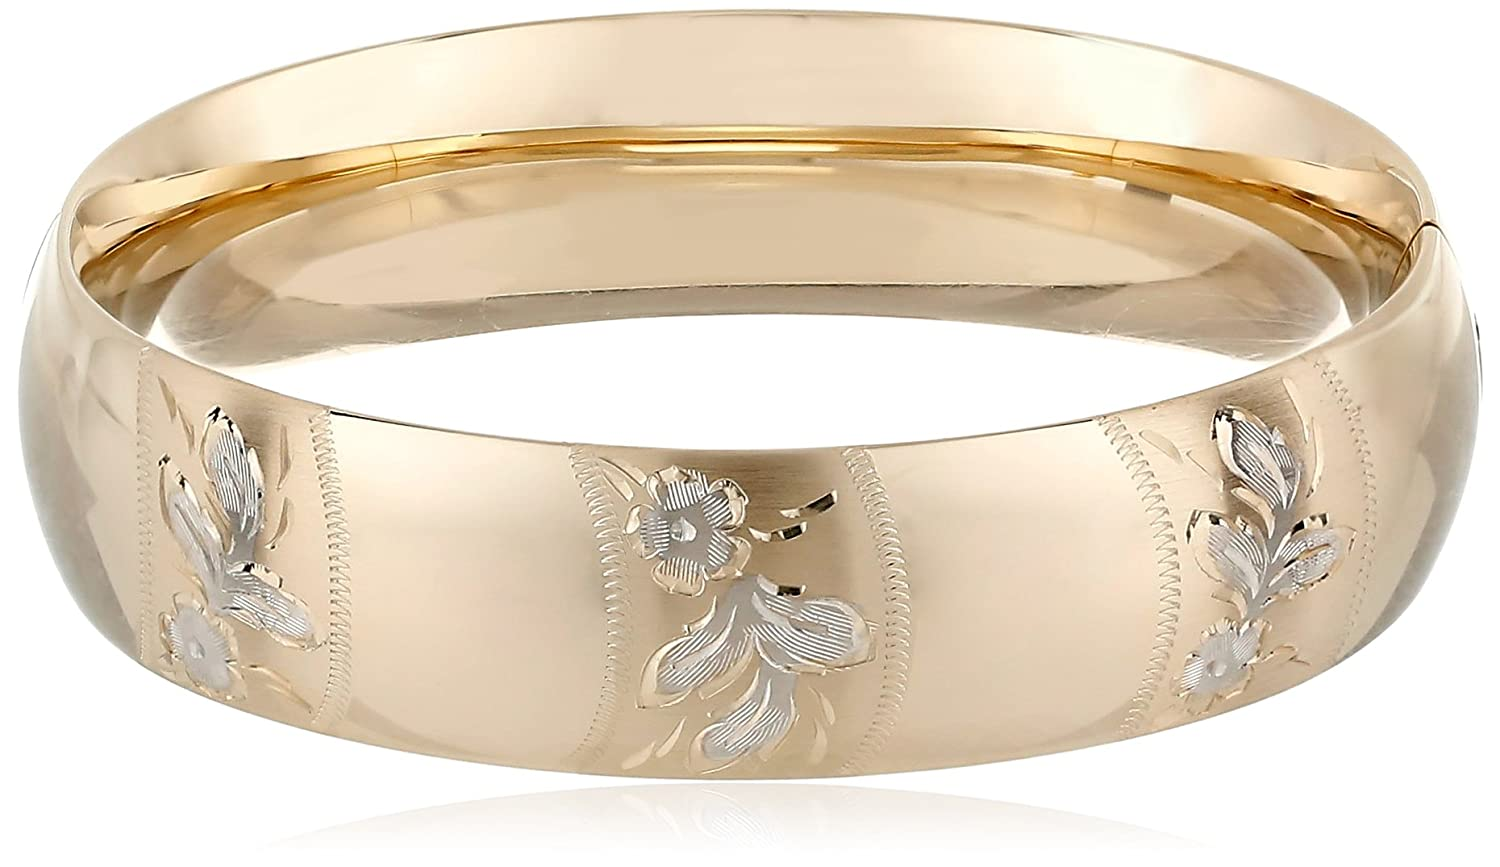 watches bangles bangle jewelry shipping product bracelets free overstock karat gold today yellow